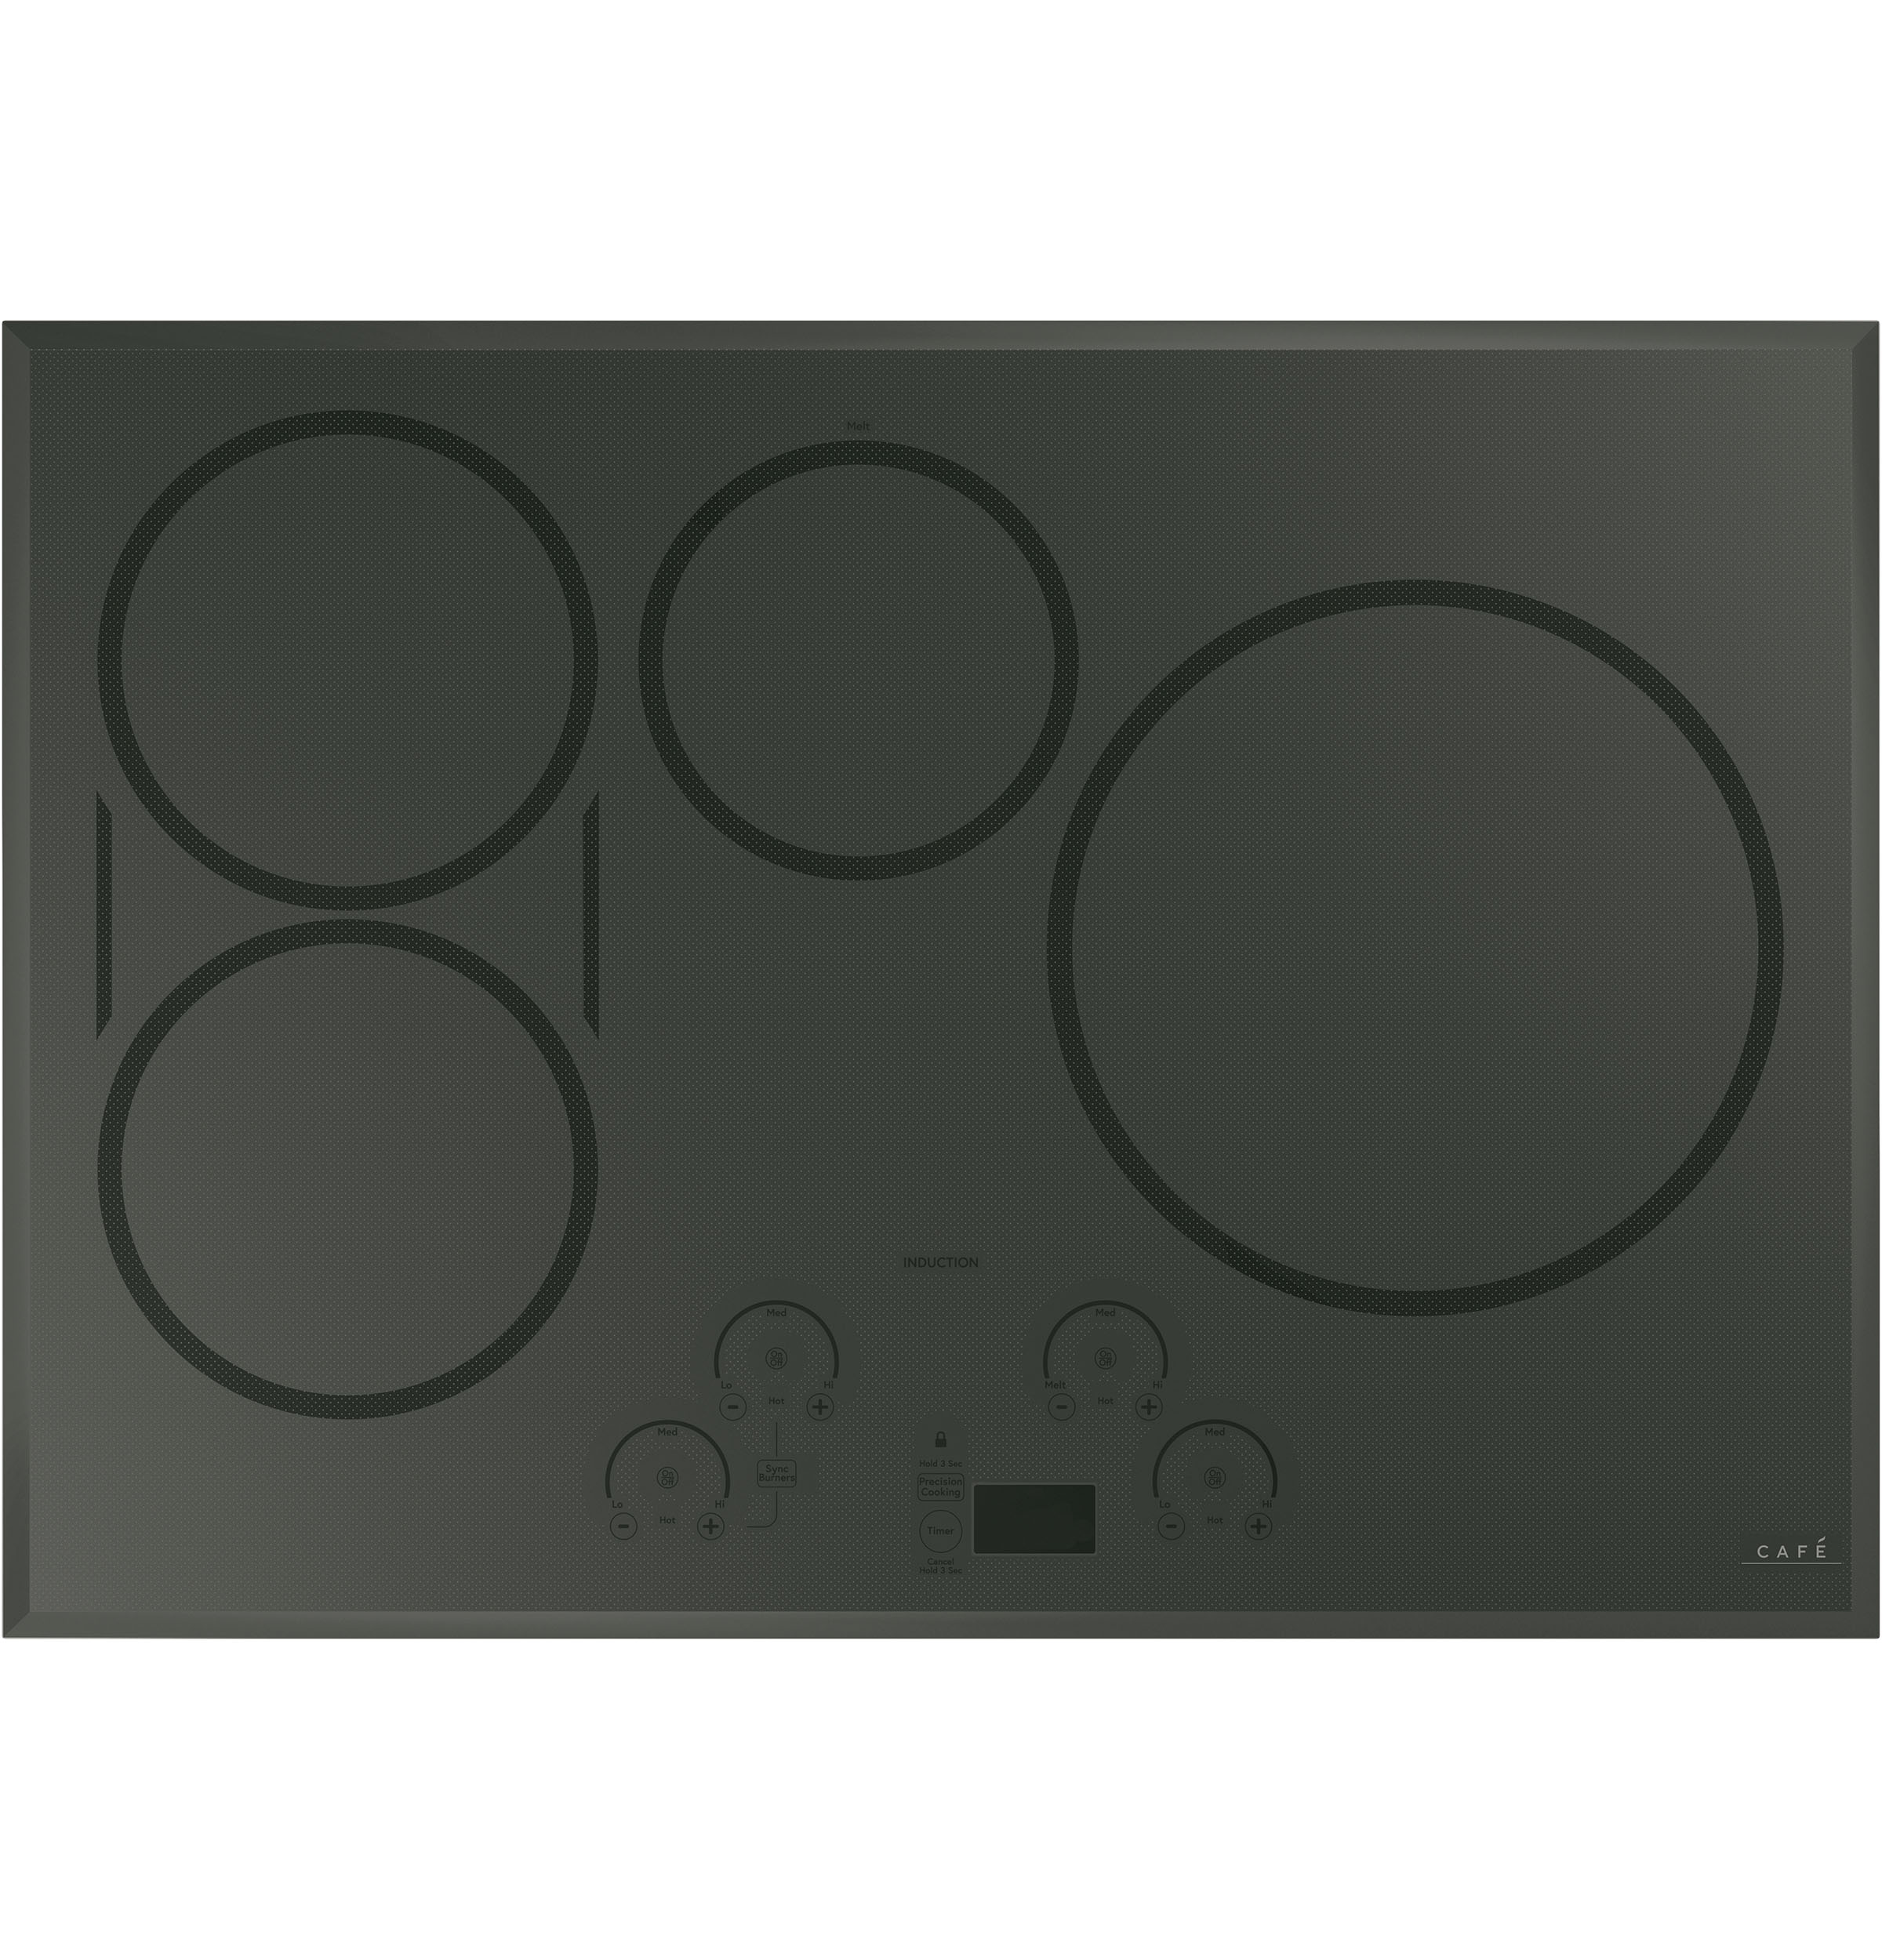 "Cafe Café™ 30"" Smart Touch Control Induction Cooktop"